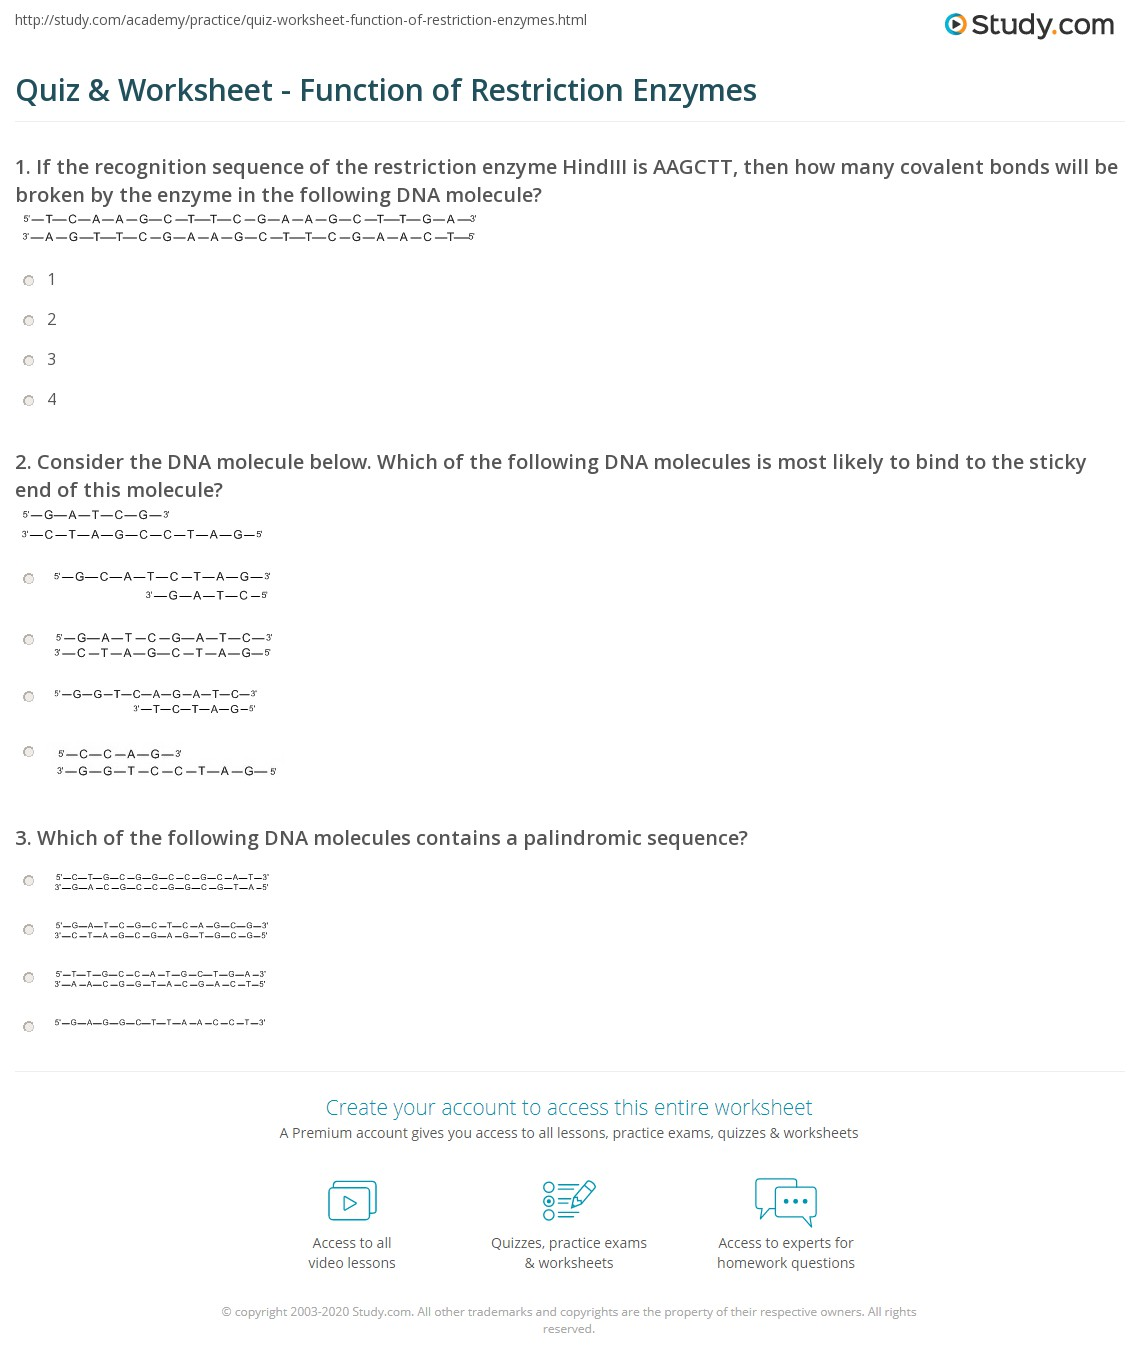 Quiz Worksheet Function Of Restriction Enzymes Study Com